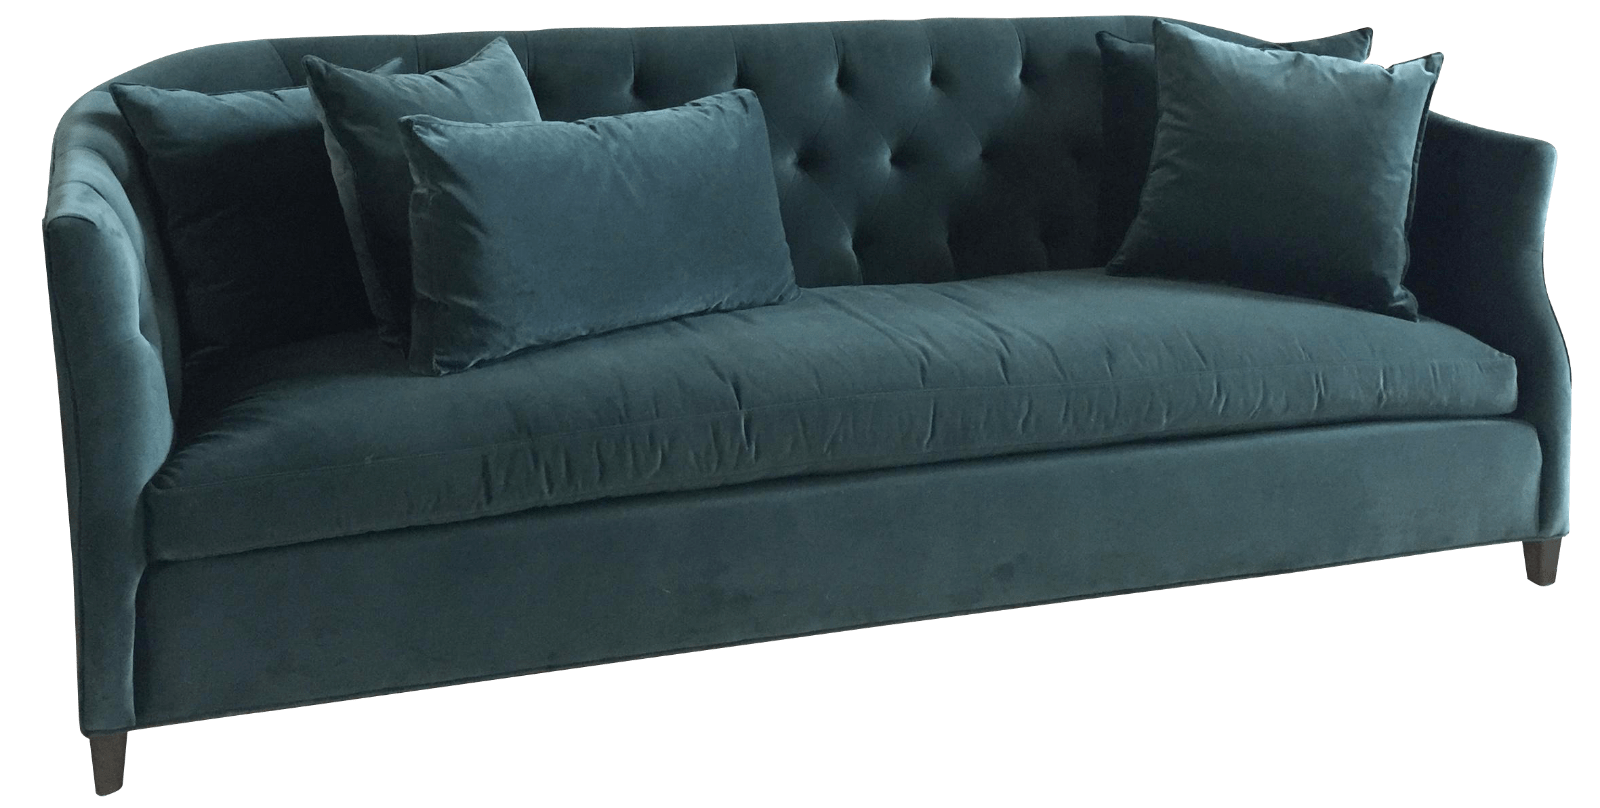 emerald green sofa covers ikea with chaise longue impressive exquisite botanical velvet